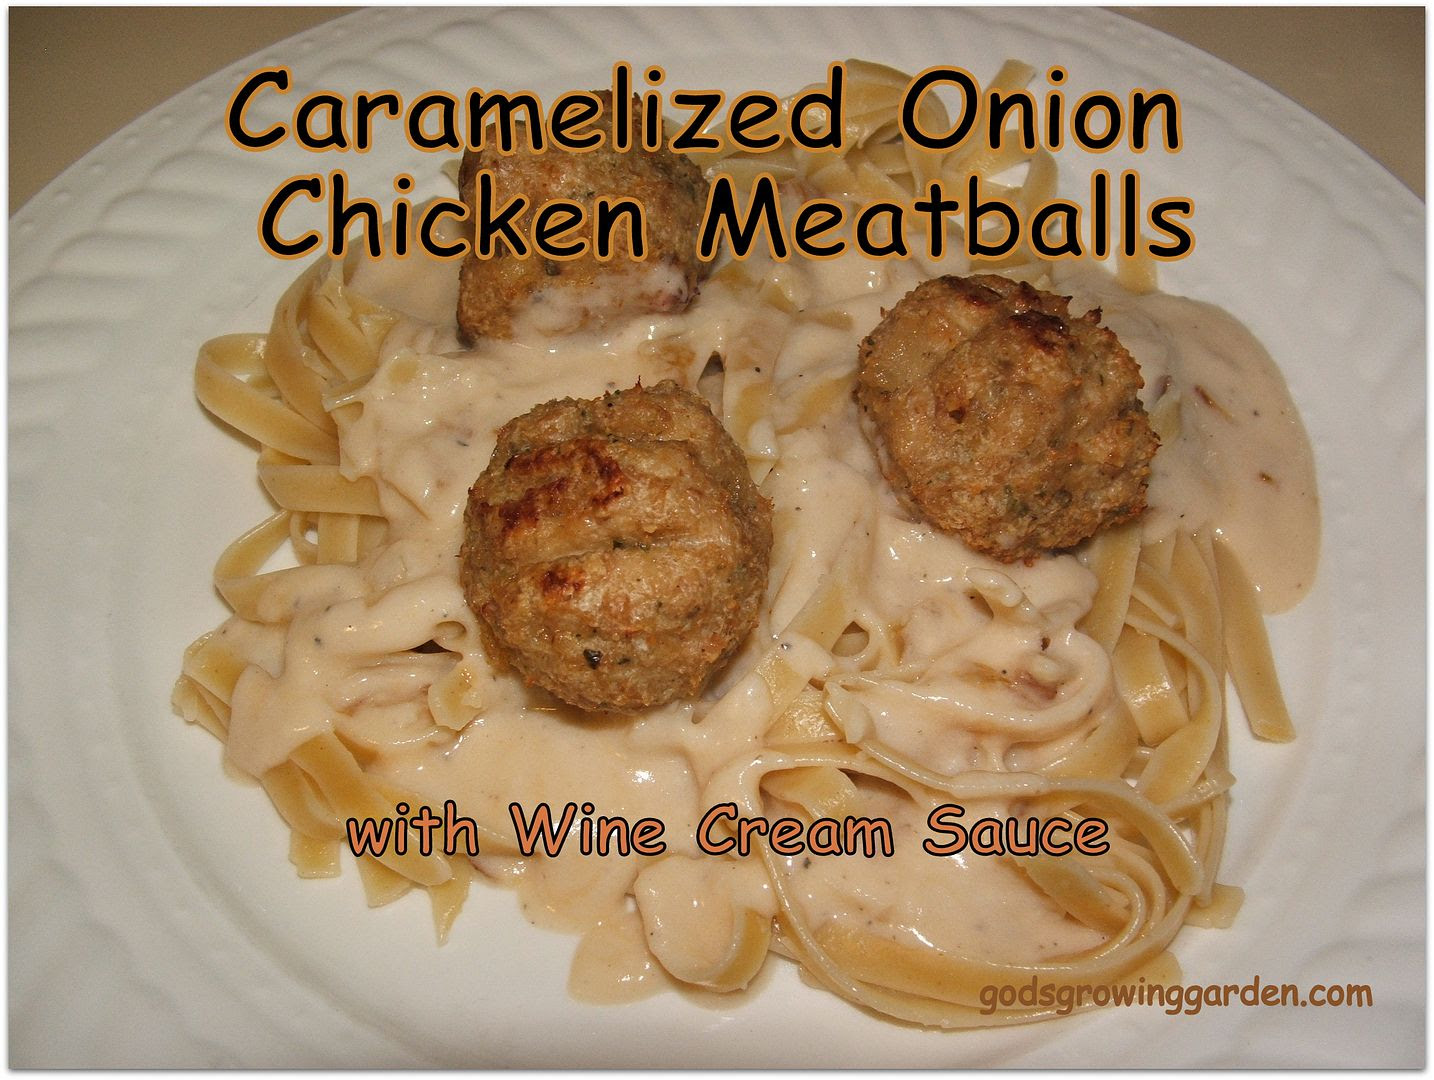 Carameized Onion Chicken Meatballs photo 013_zpsfd4698a6.jpg